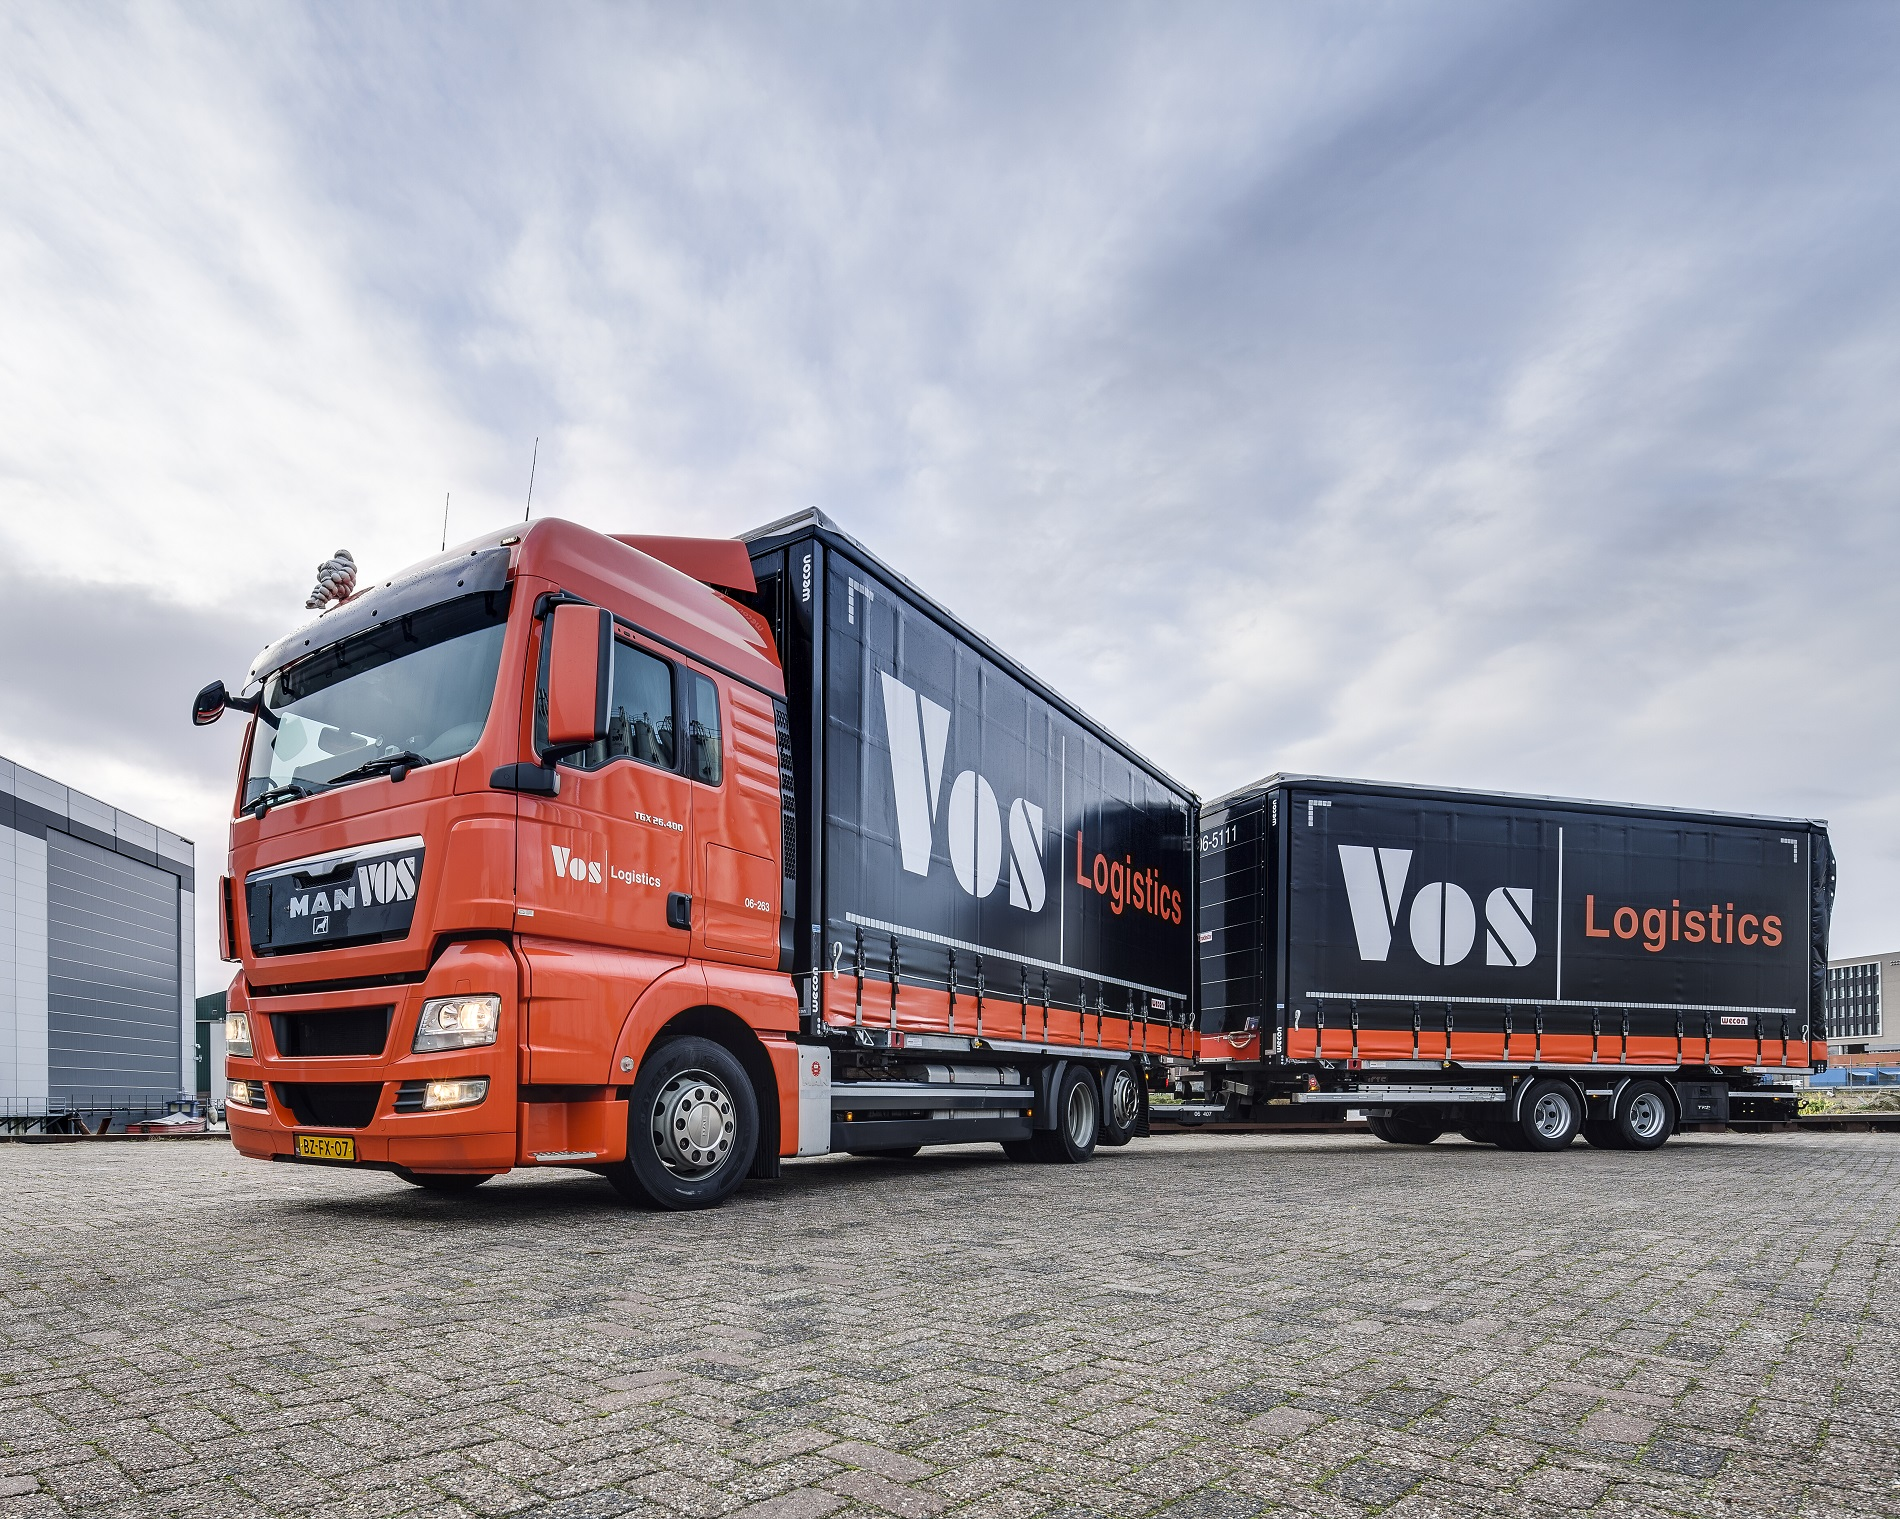 VosLogistics_afdruk_80x100__BASE_20141211_01.jpg